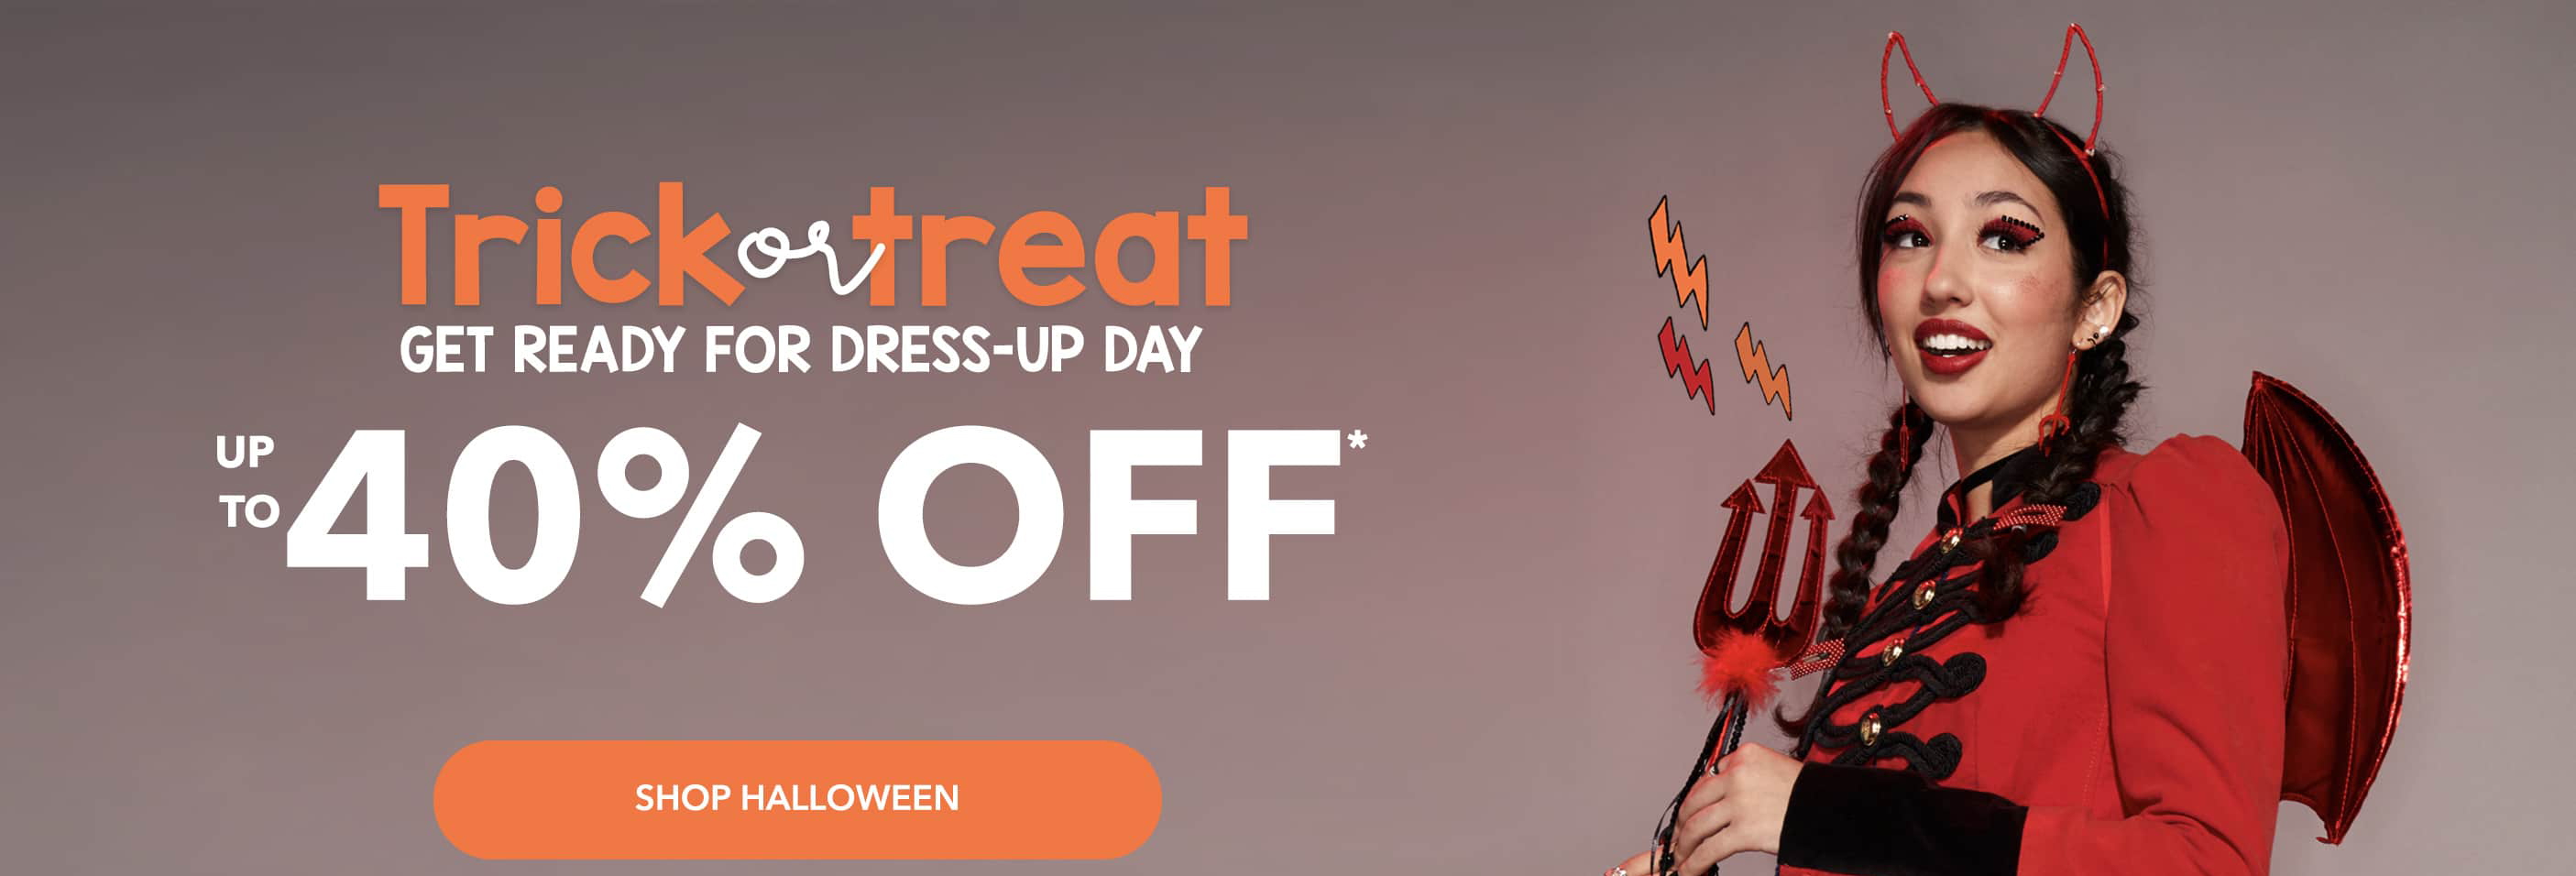 Trick or treat! Get ready for dress-up day and shop our BOOtique for the cutest hair accessories, makeup and jewelry up to 40% OFF*  Standard shipping for online orders placed by 10/21. SHOP HALLOWEEN